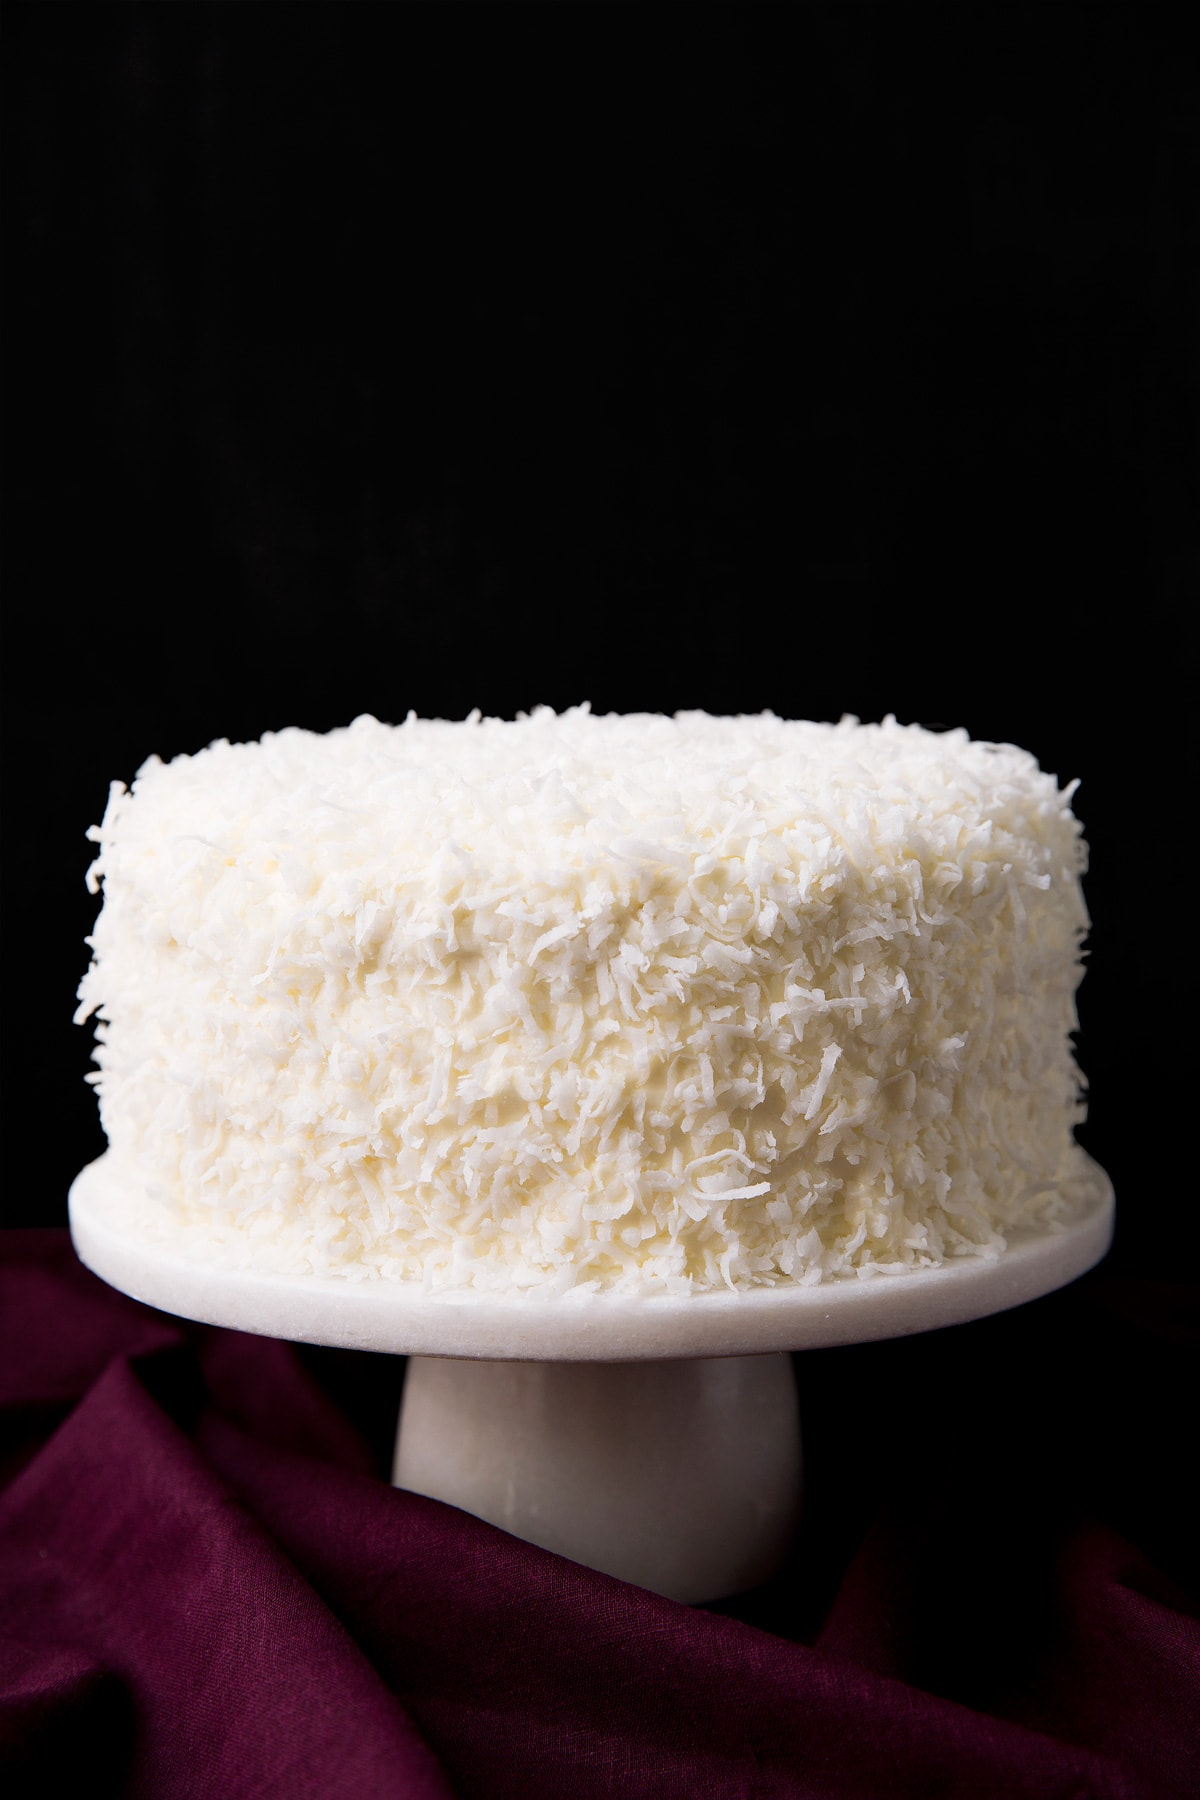 Whole made from scratch coconut cake garnished with lots of coconut and set over a white marble cake stand with a black ground and a maroon tablecloth underneath.